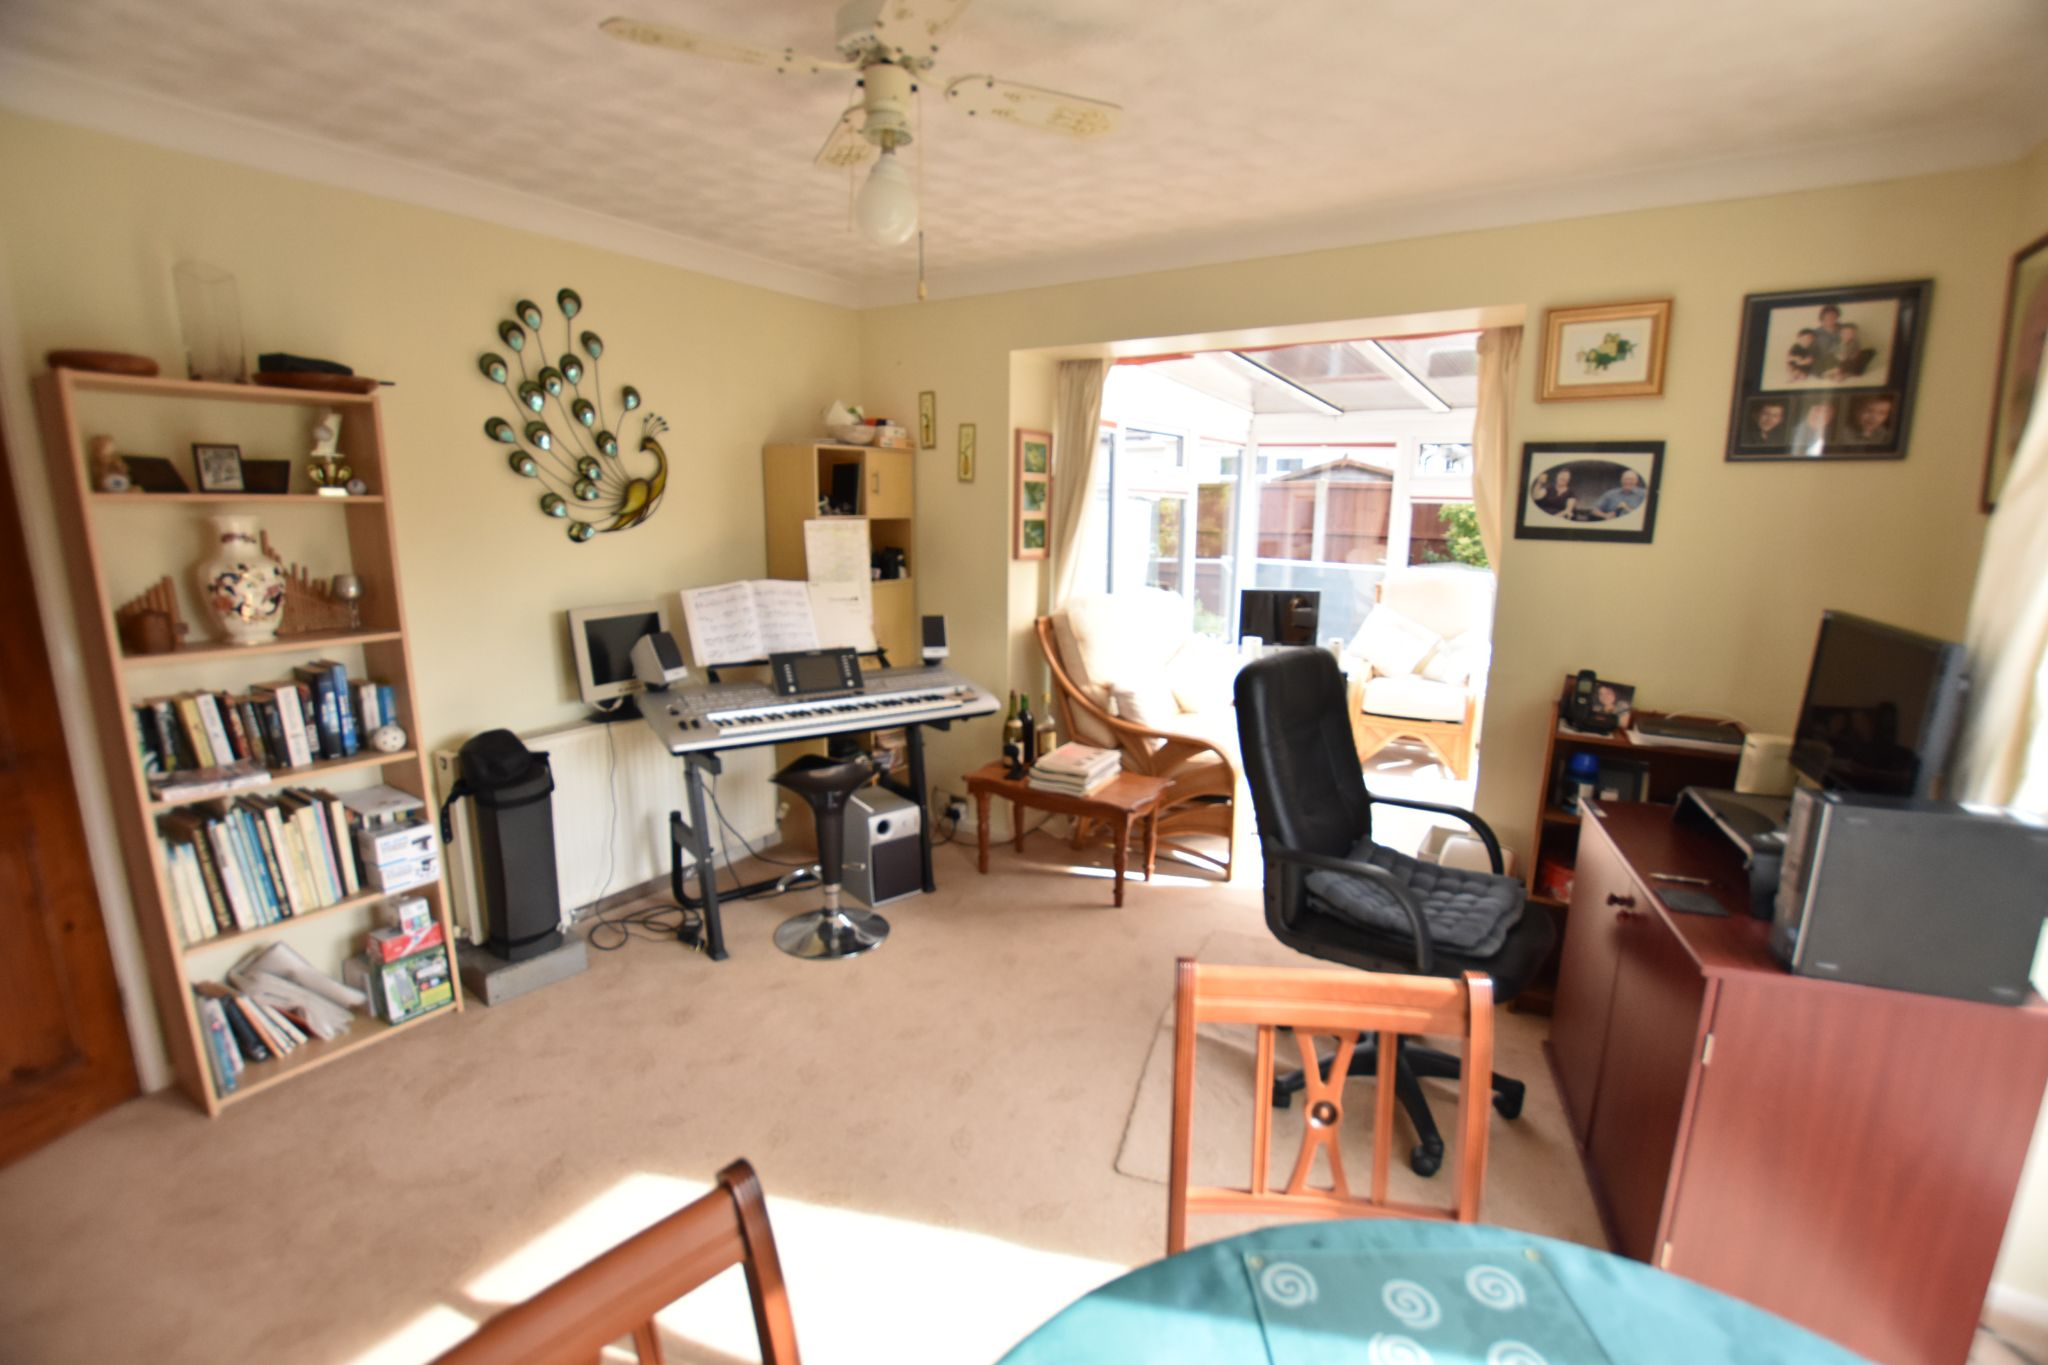 3 bedroom semi-detached bungalow Sold STC in Preston - Dining Room